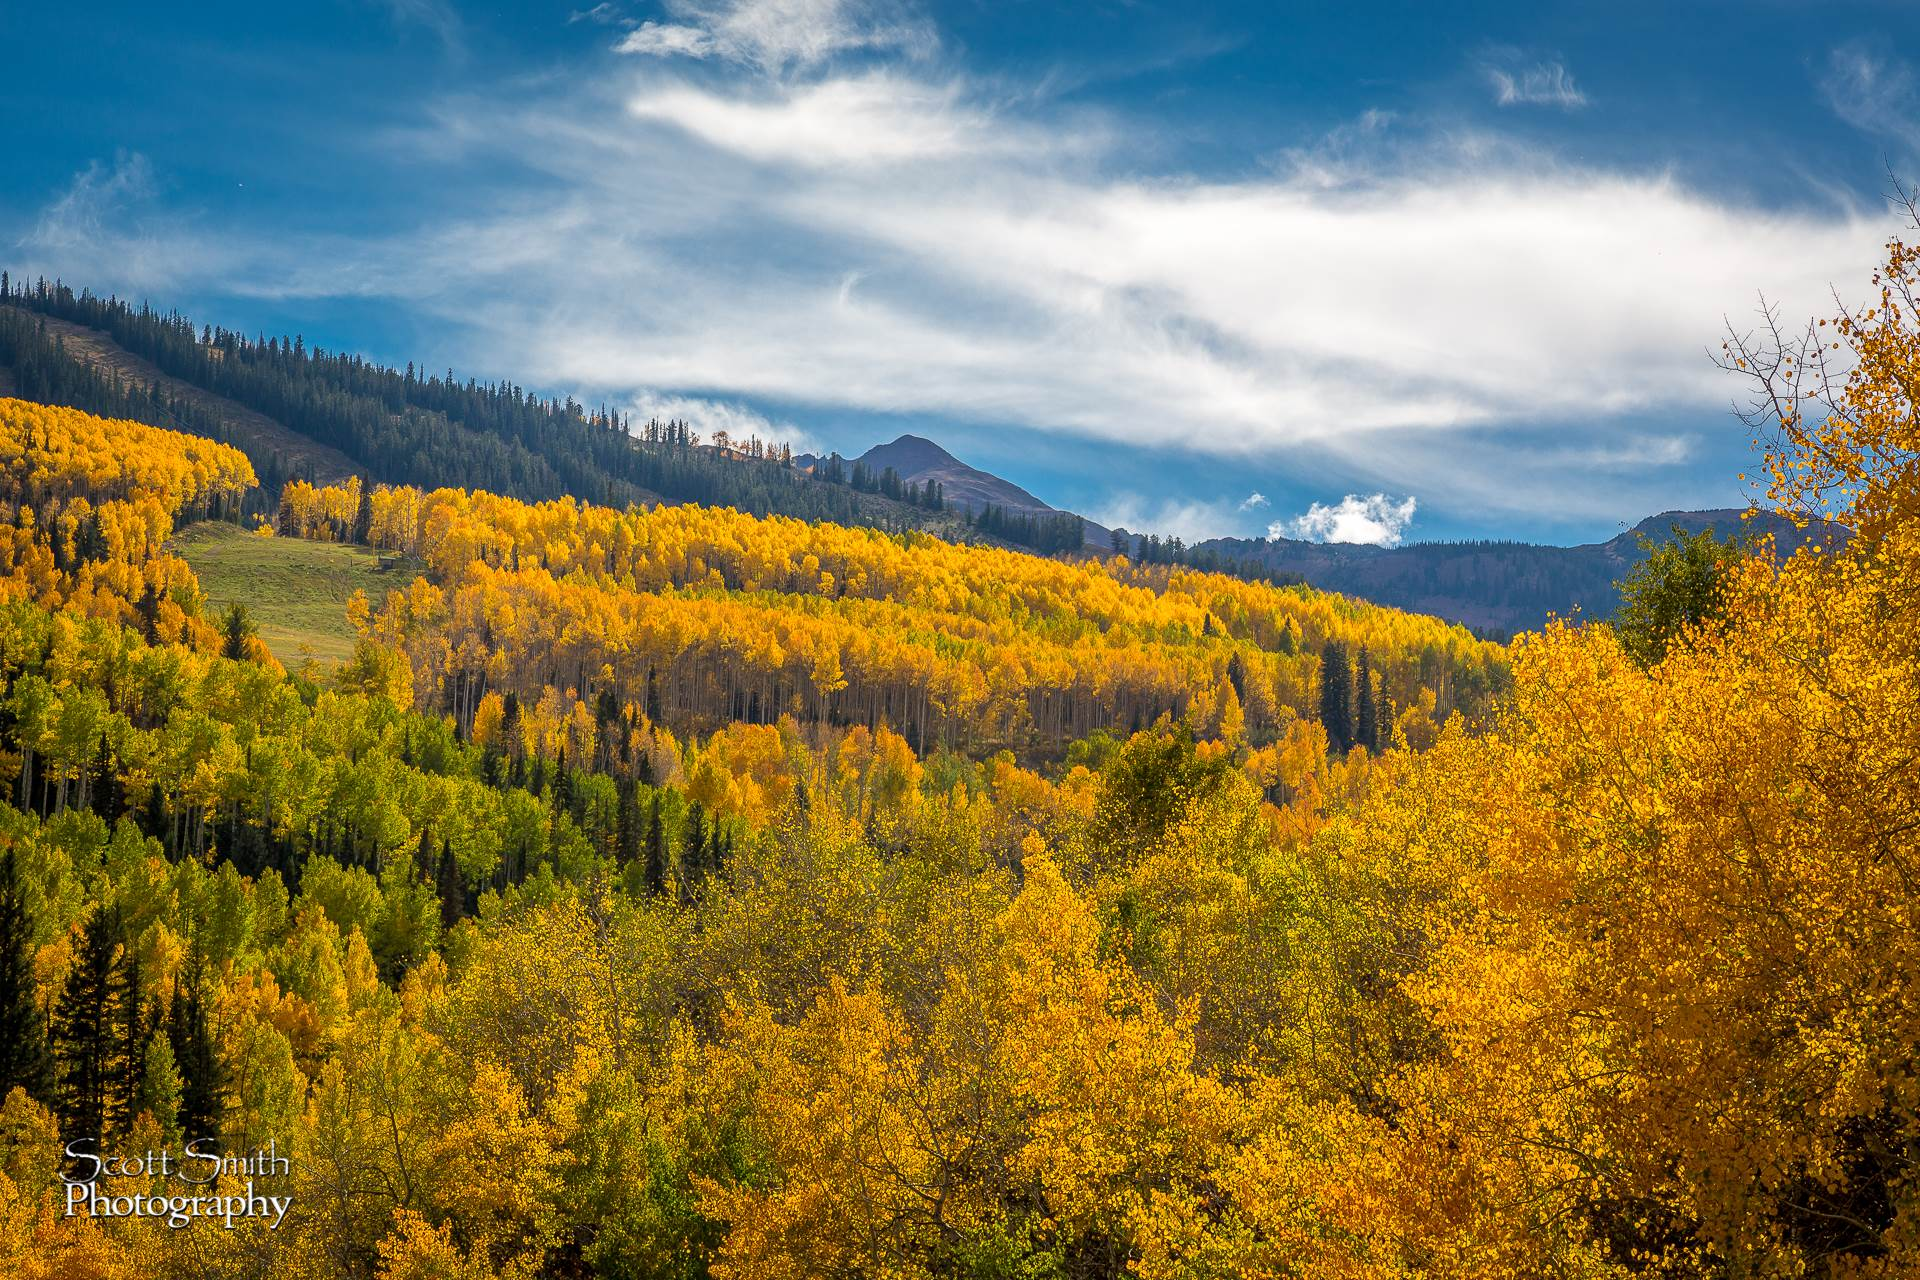 Snowmass Colors - The fall colors seen from Snowmass, Colorado. by D Scott Smith